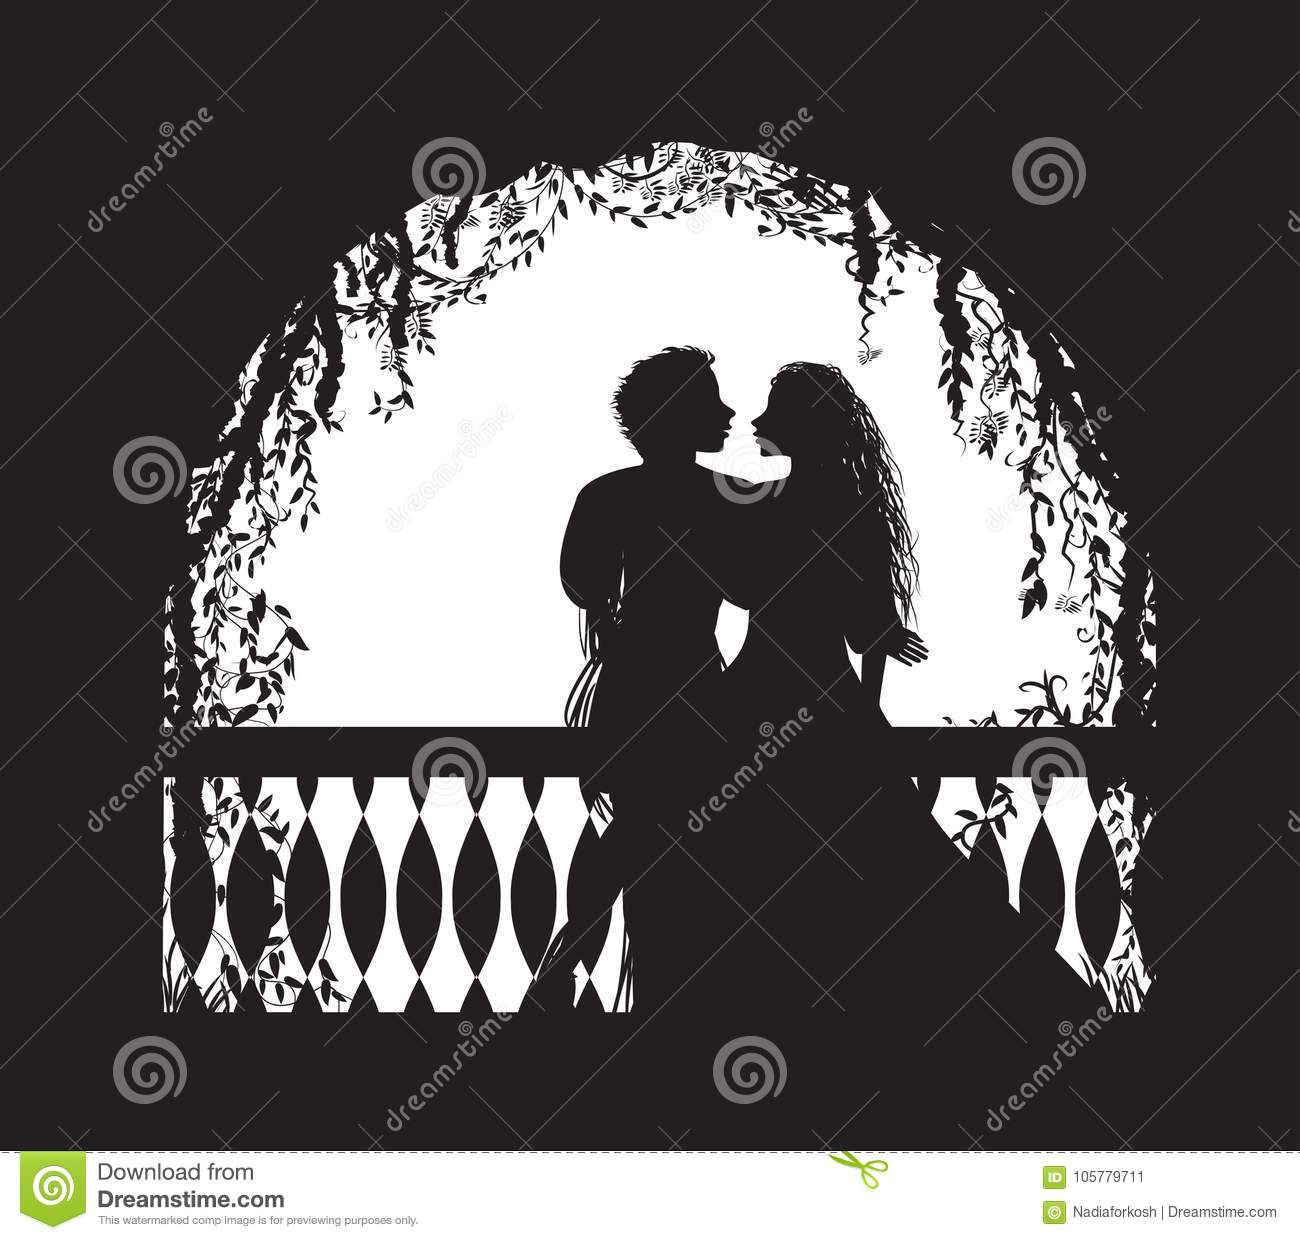 Shakespeare S Play Romeo And Juliet On Balcony, Romantic Date, Silhouette,  Love Story